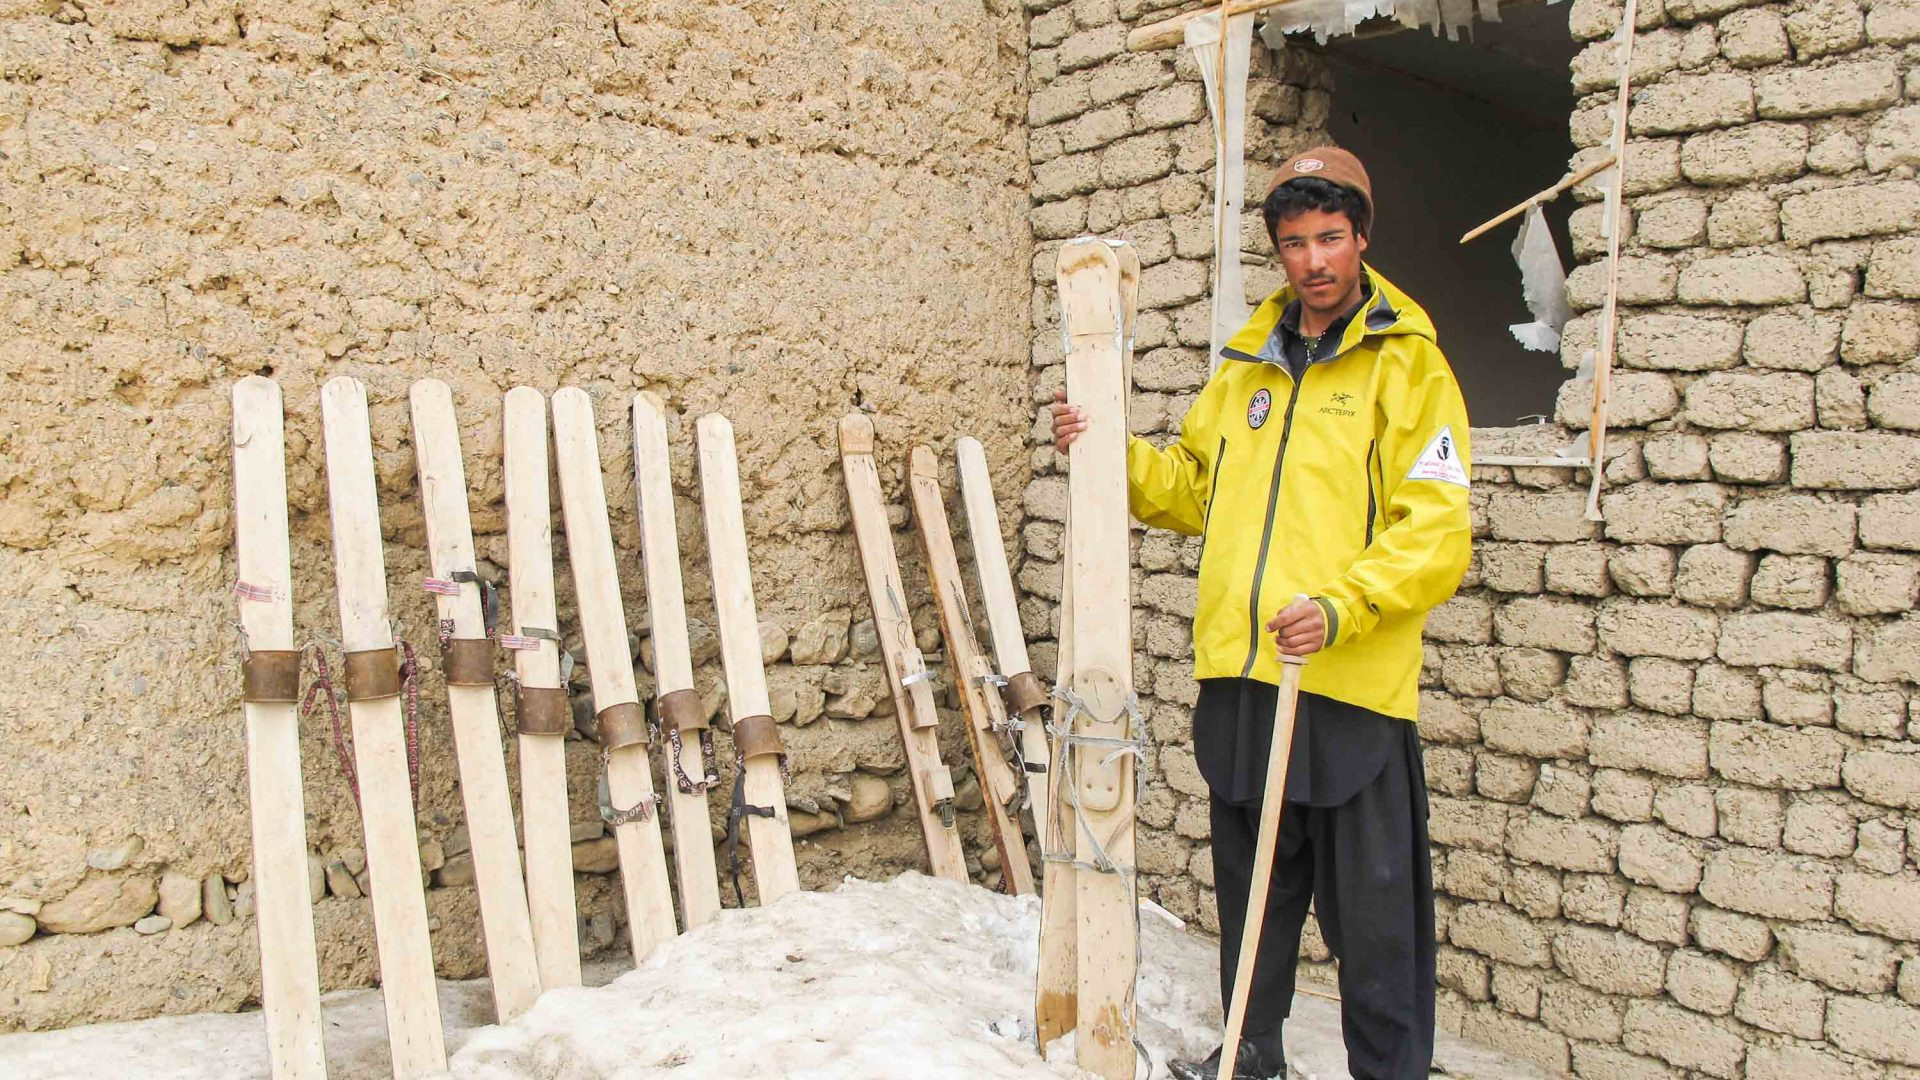 A man shows some of the handmade skis that some of the participants use in the Afghan Ski Challenge.